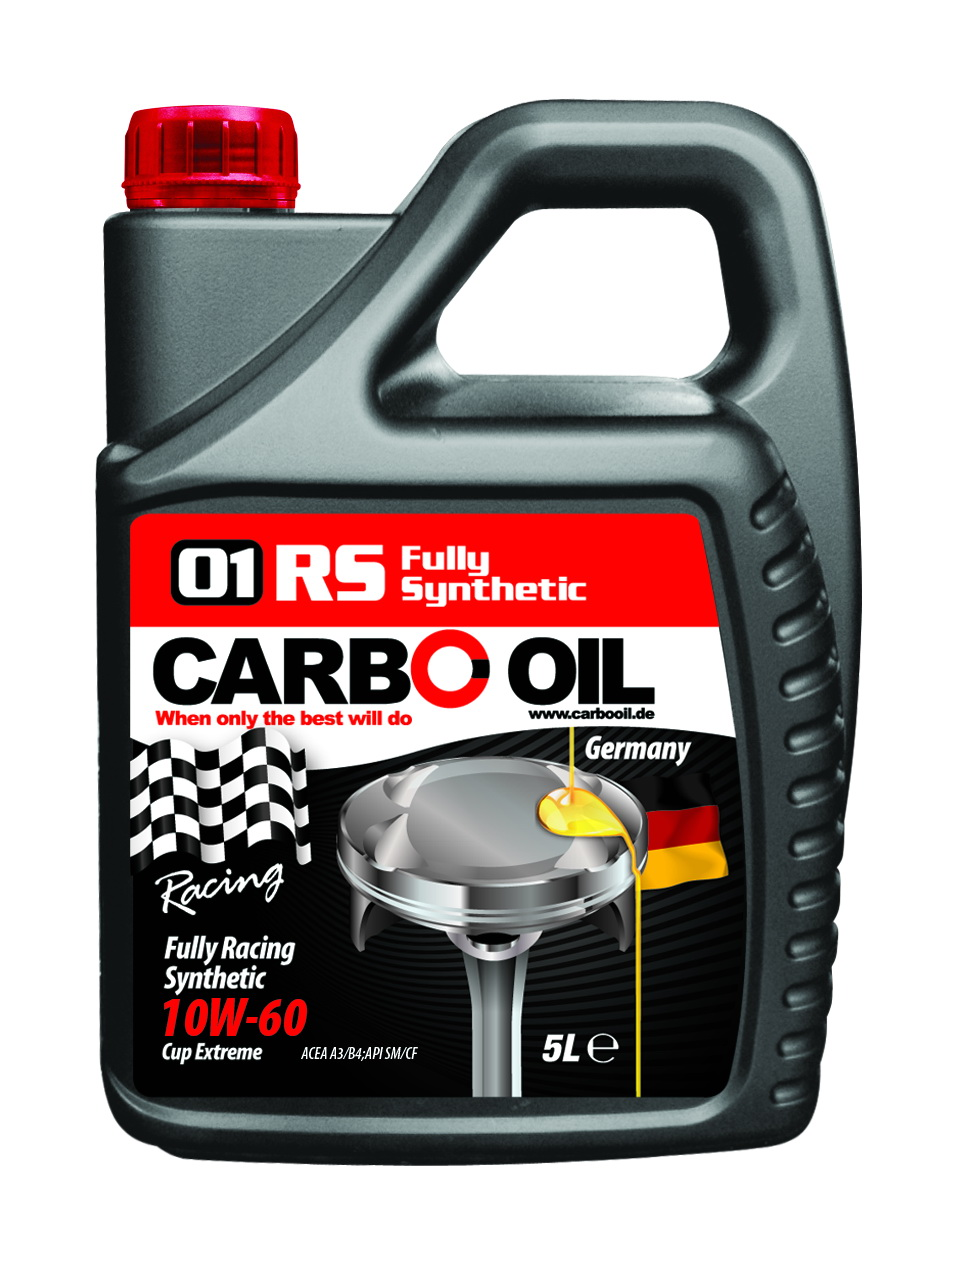 01 rs fully racing synthetic 5l 10w 60 0671 carbo oil for Synthetic motor oil sale